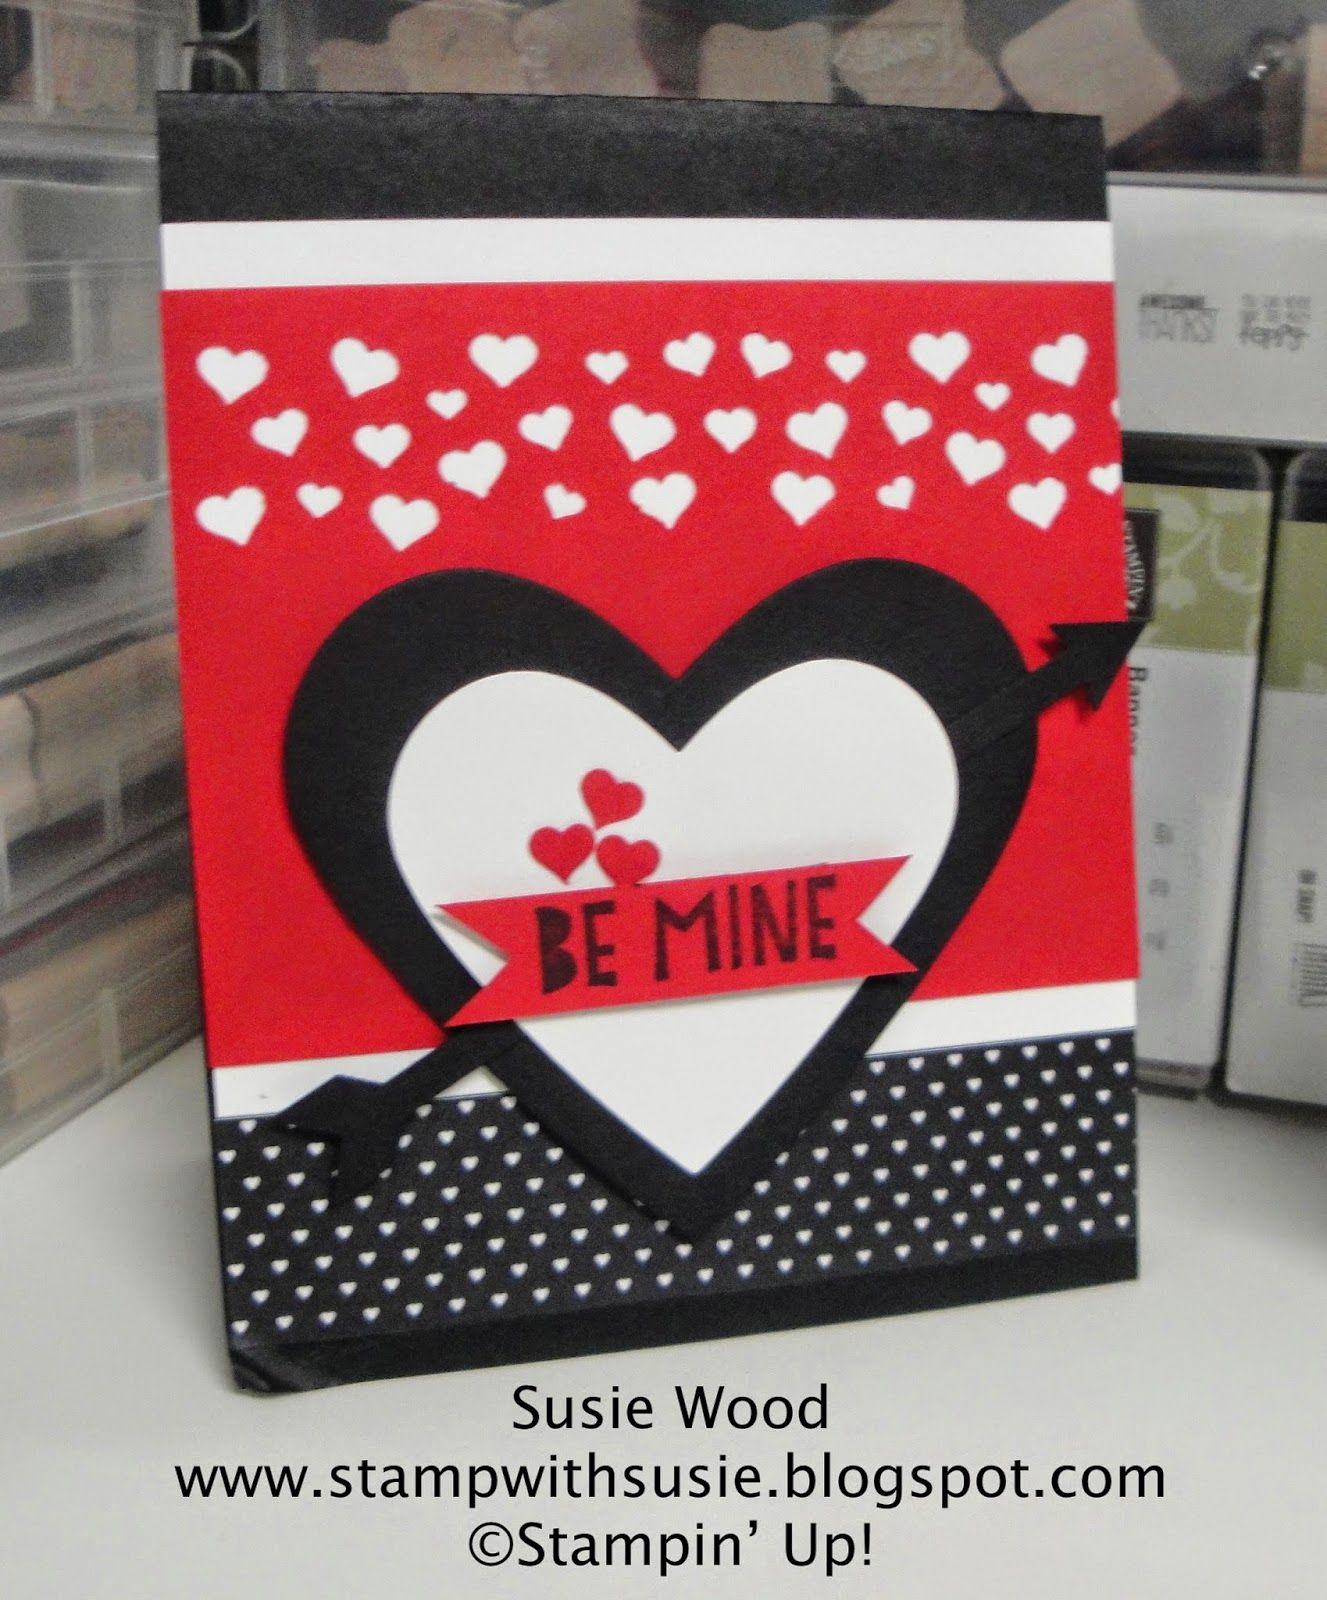 Mine Stamp Marcador De Ropa Y Libros Stampin 39 Up Be Mine With This Valentines 39you Plus Me